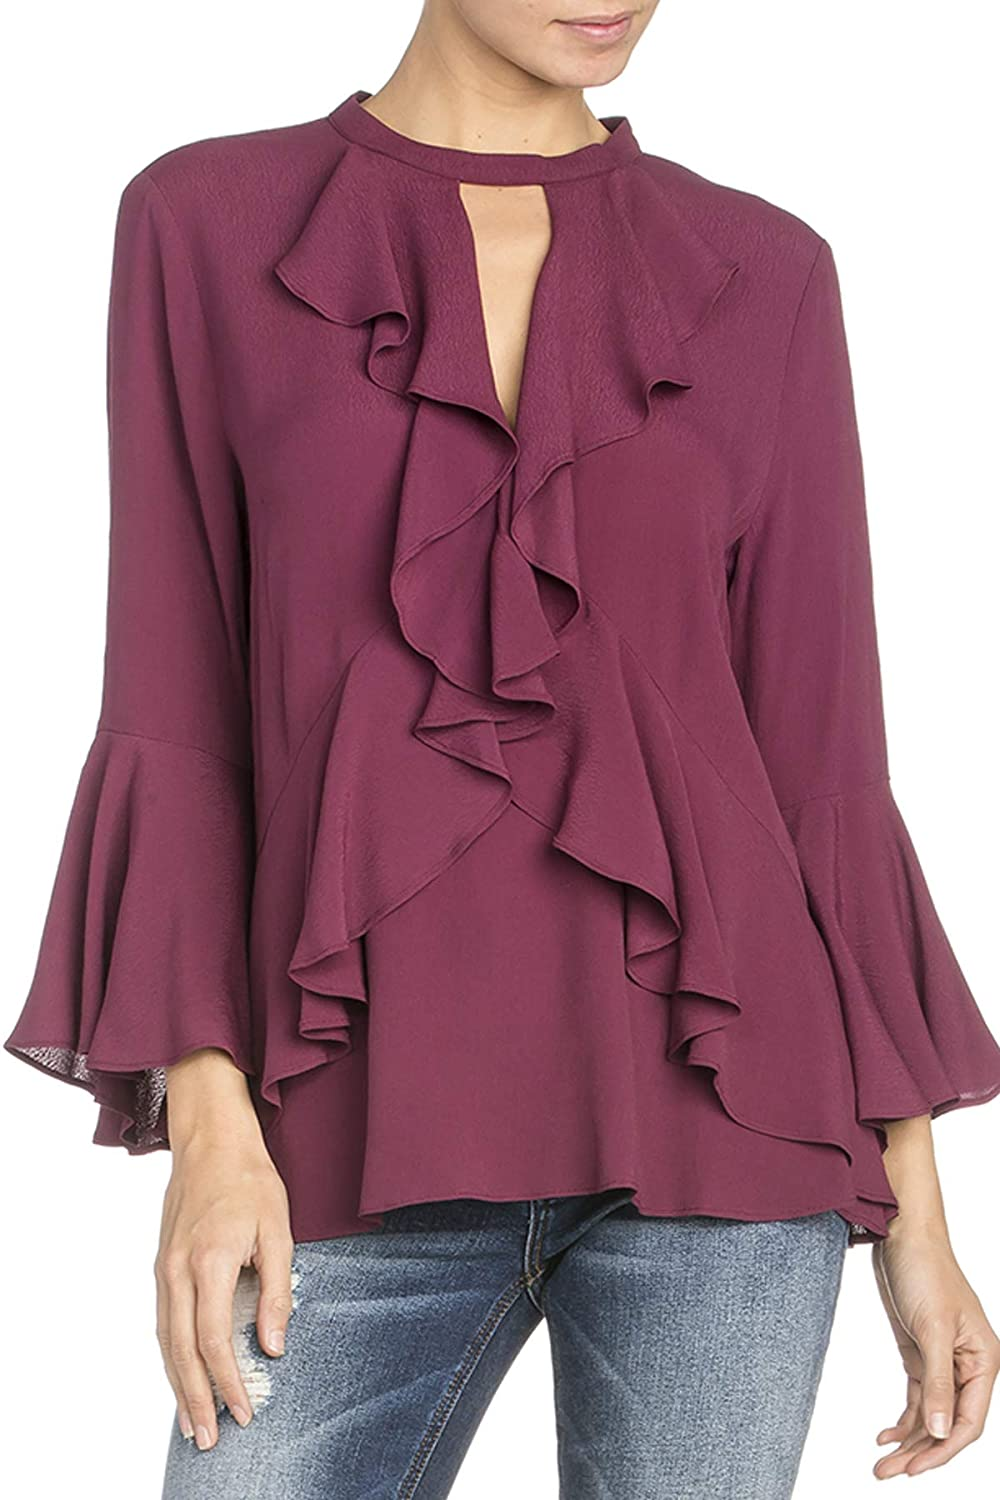 Miss Me MMT0401L Plum Purple Keyhole Ruffle Bell Sleeve Top